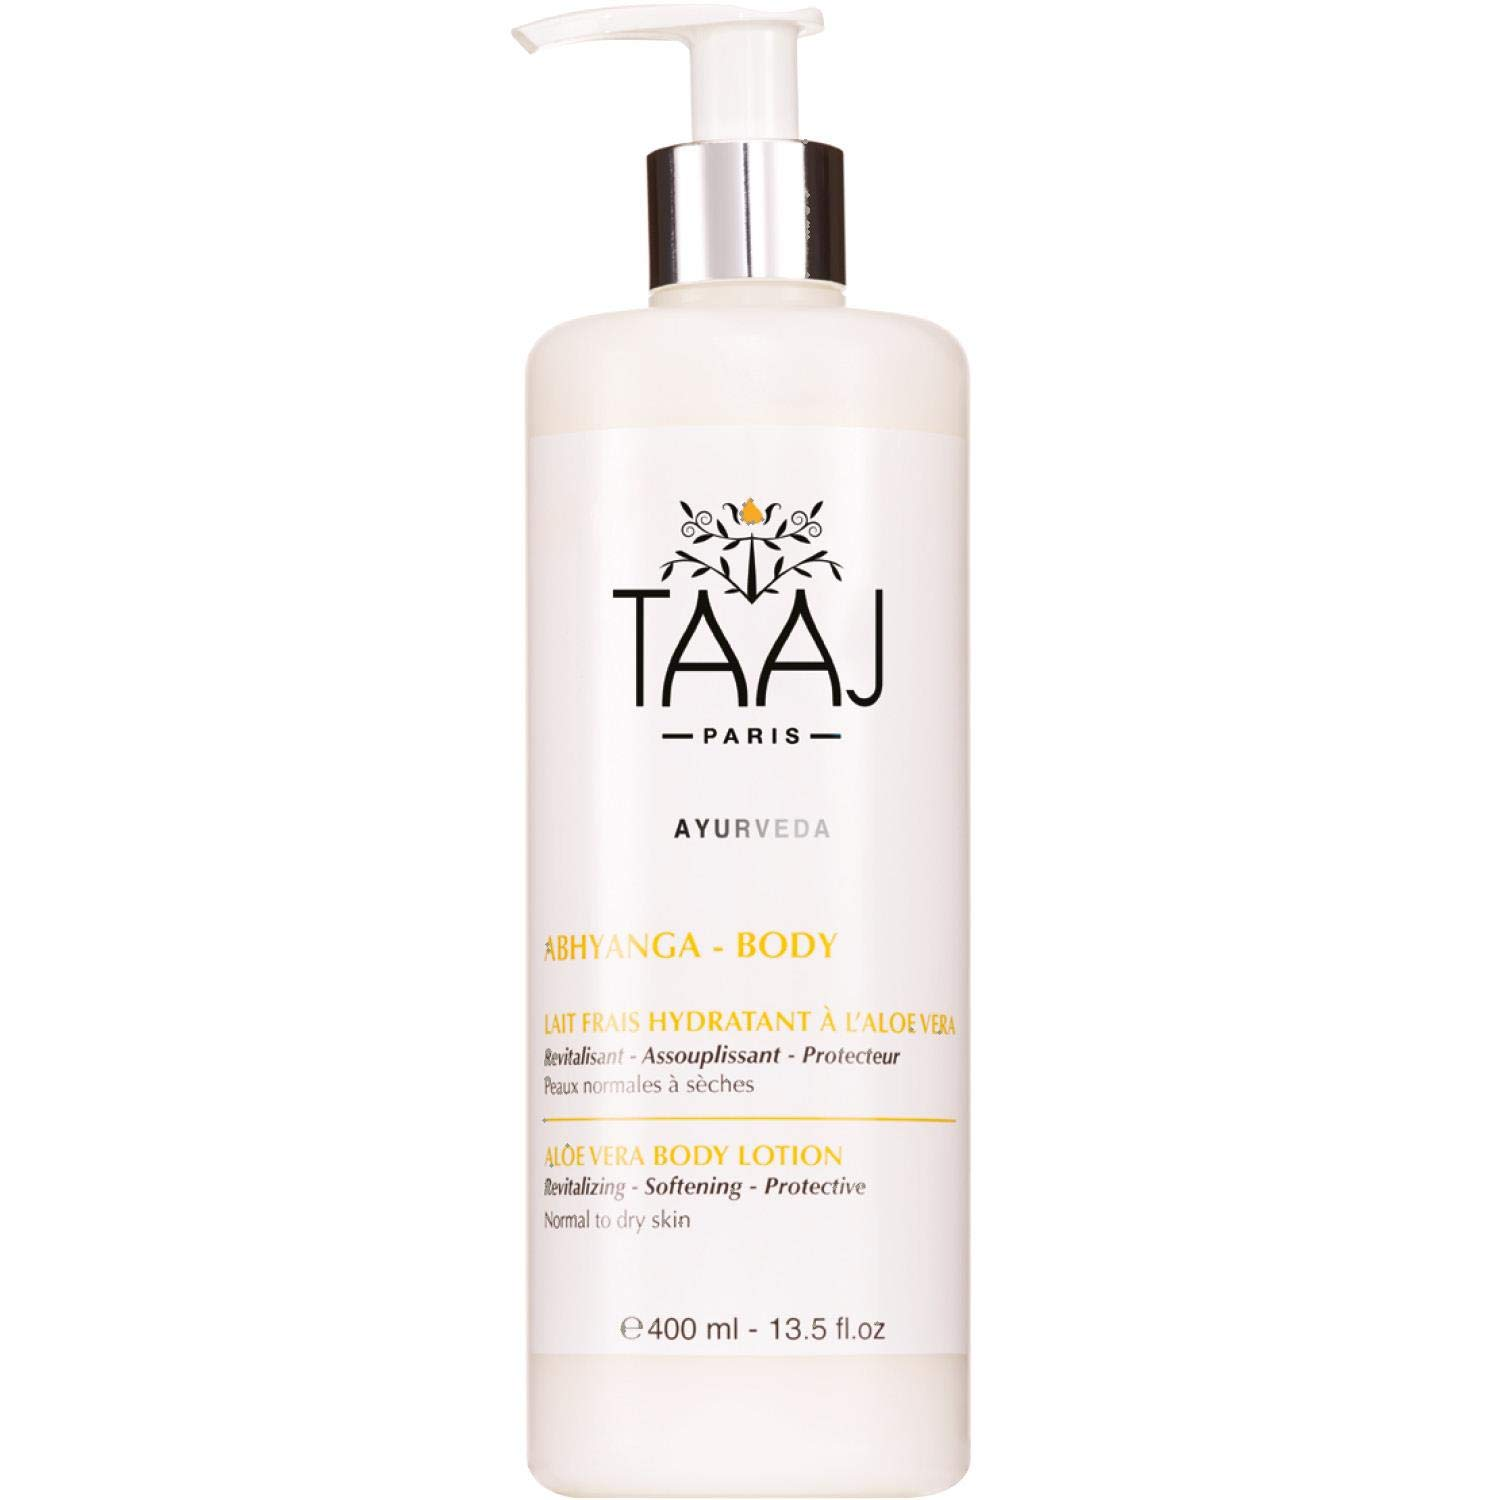 Delicious Body Lotion for Dry Skin - Natural Hyaluronic Acid for Sensitive Skin - Anti-aging formula contains Aloe Vera, Camellia Oil, Moringa Butter & Organic Silk Proteins - 13.5 oz.